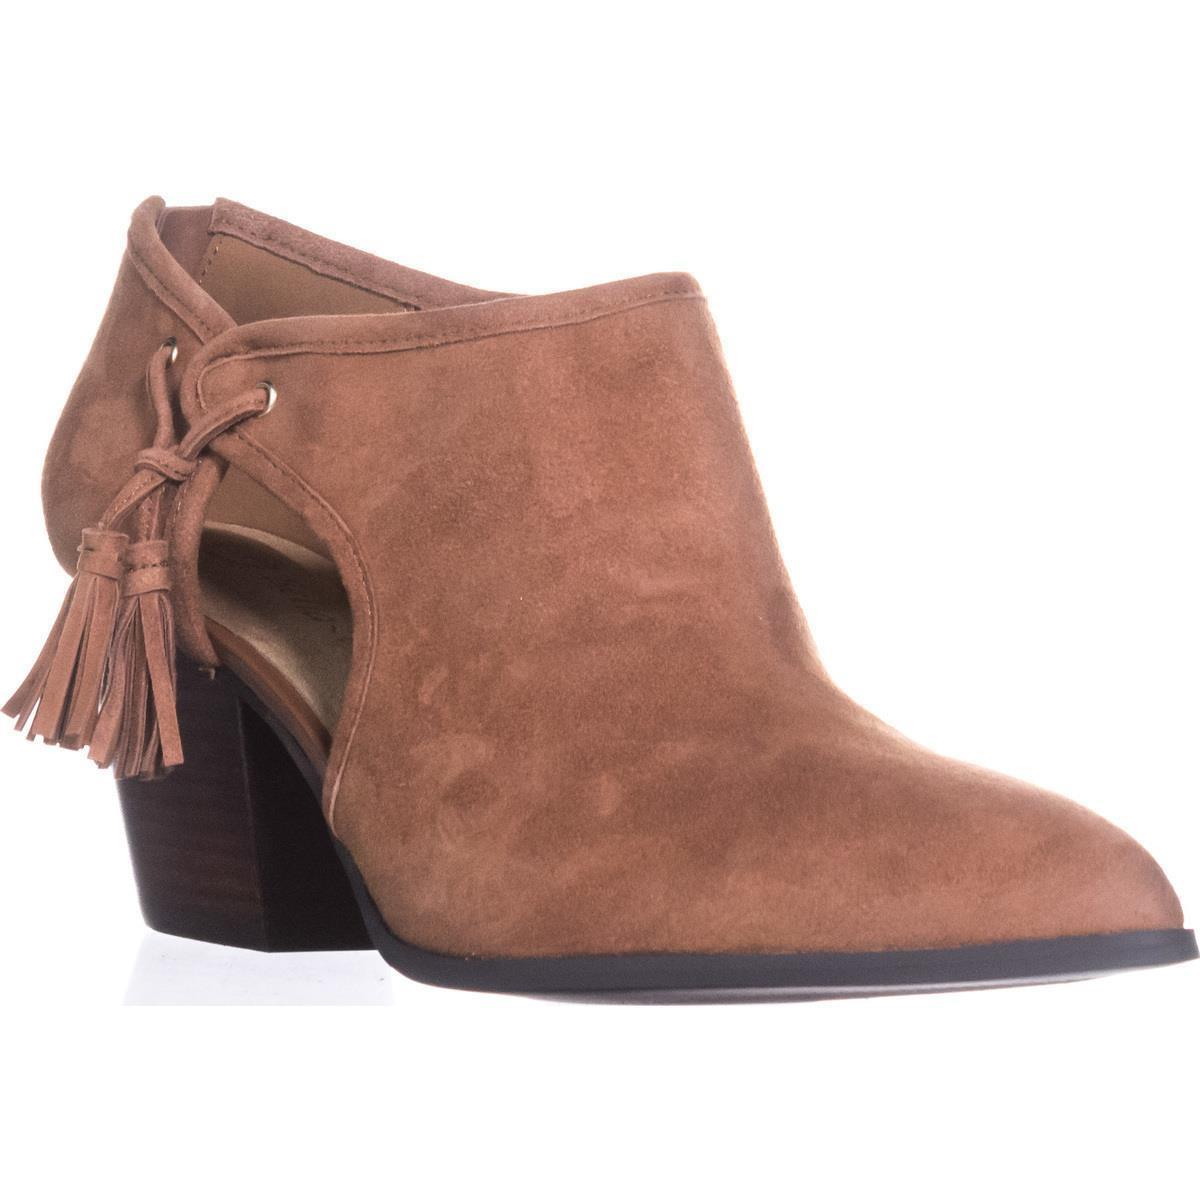 Womens Bella Vita Eli Pointed Toe Ankle Booties, Dark Tan by Bella Vita